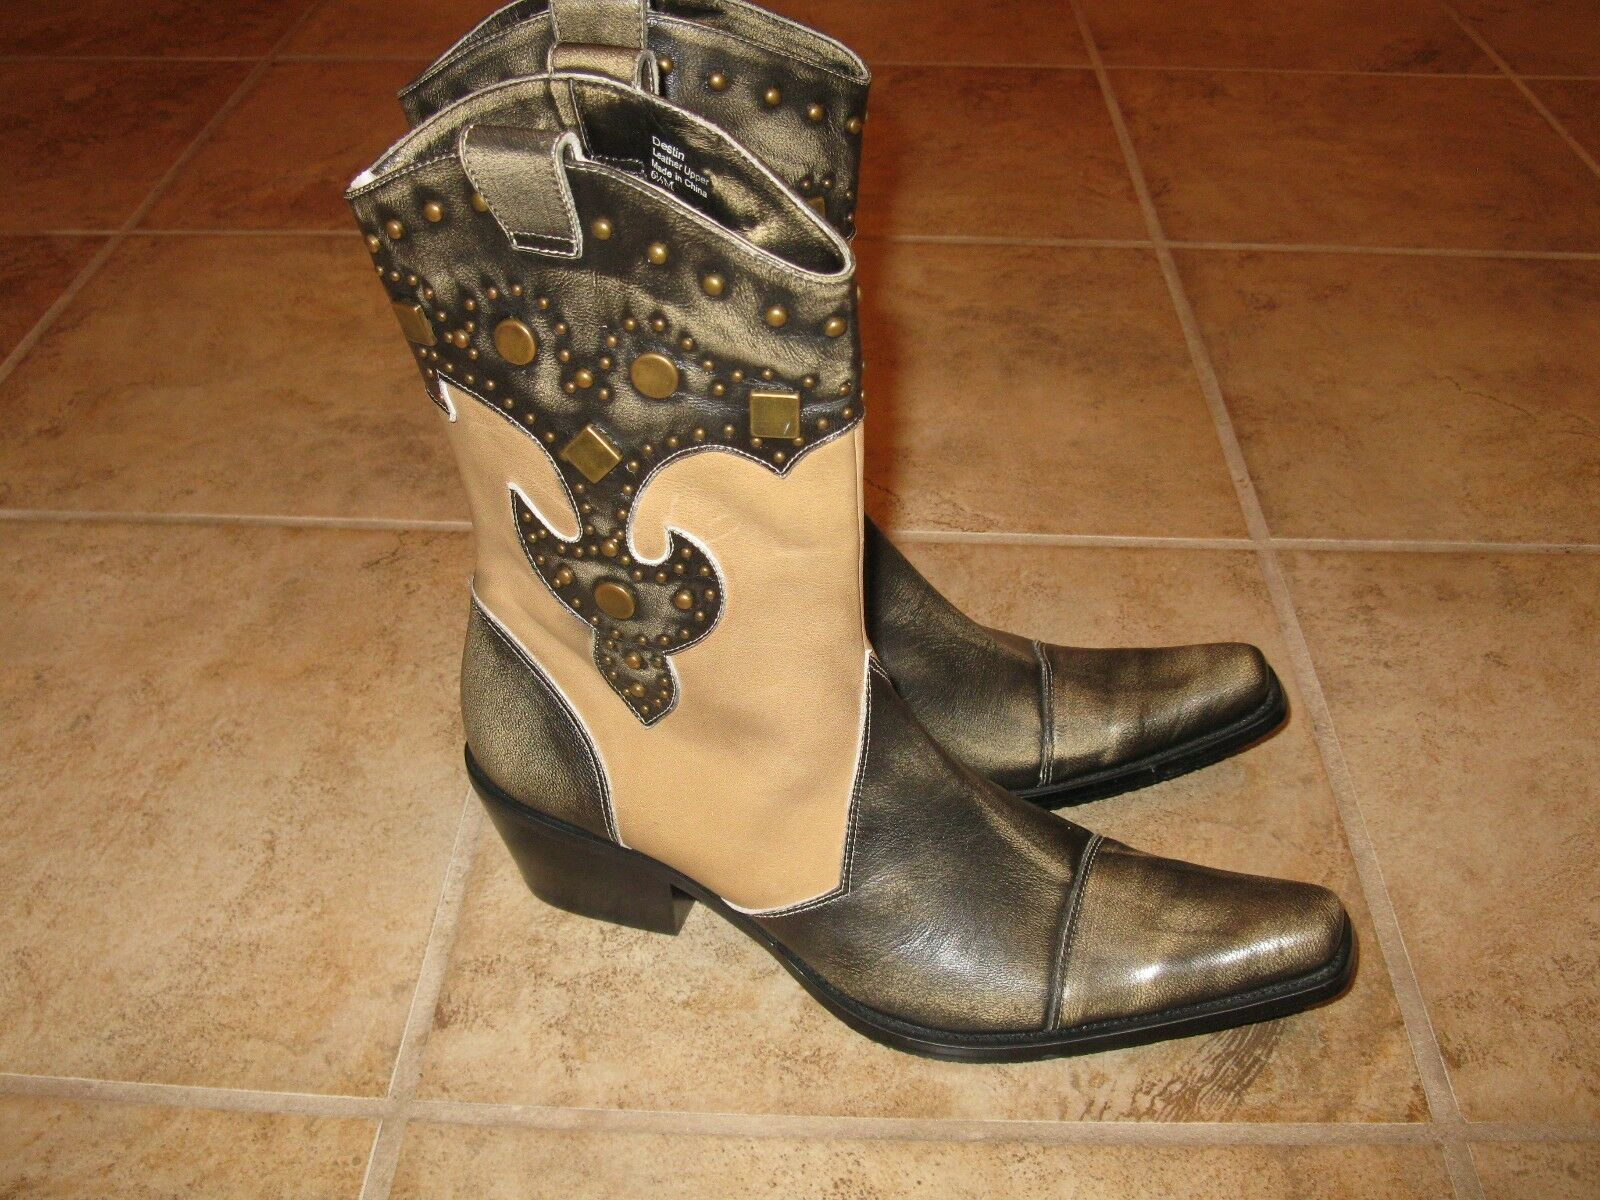 WOMENS SIZE 6.5 FASHION WESTERN BOOTS BY J. RENEE NWOB BEATUIFUL